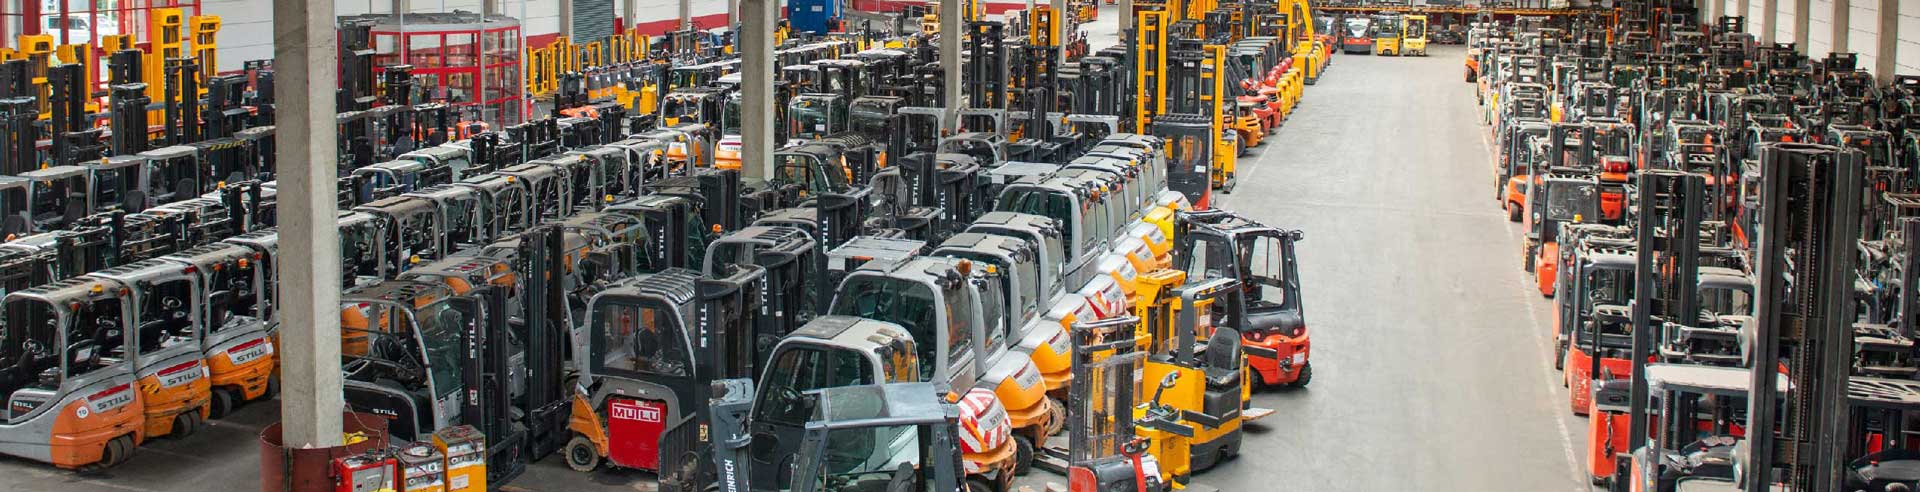 TRAFIK Bremen - used forklifts worldwide !